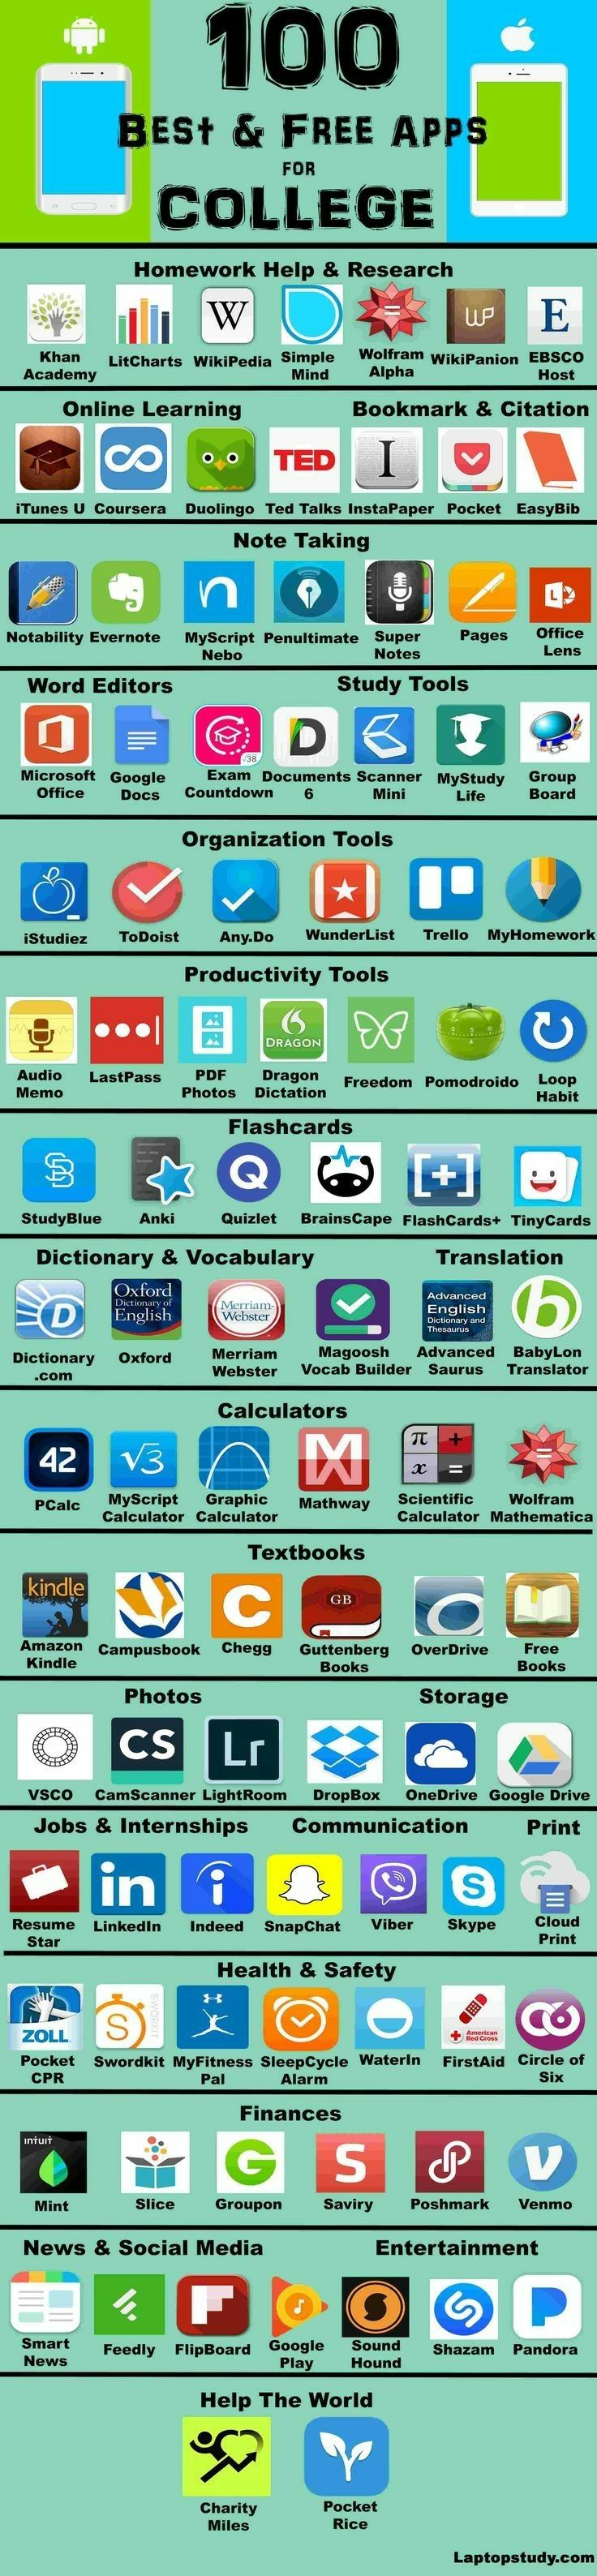 Best and Free Apps for College/University